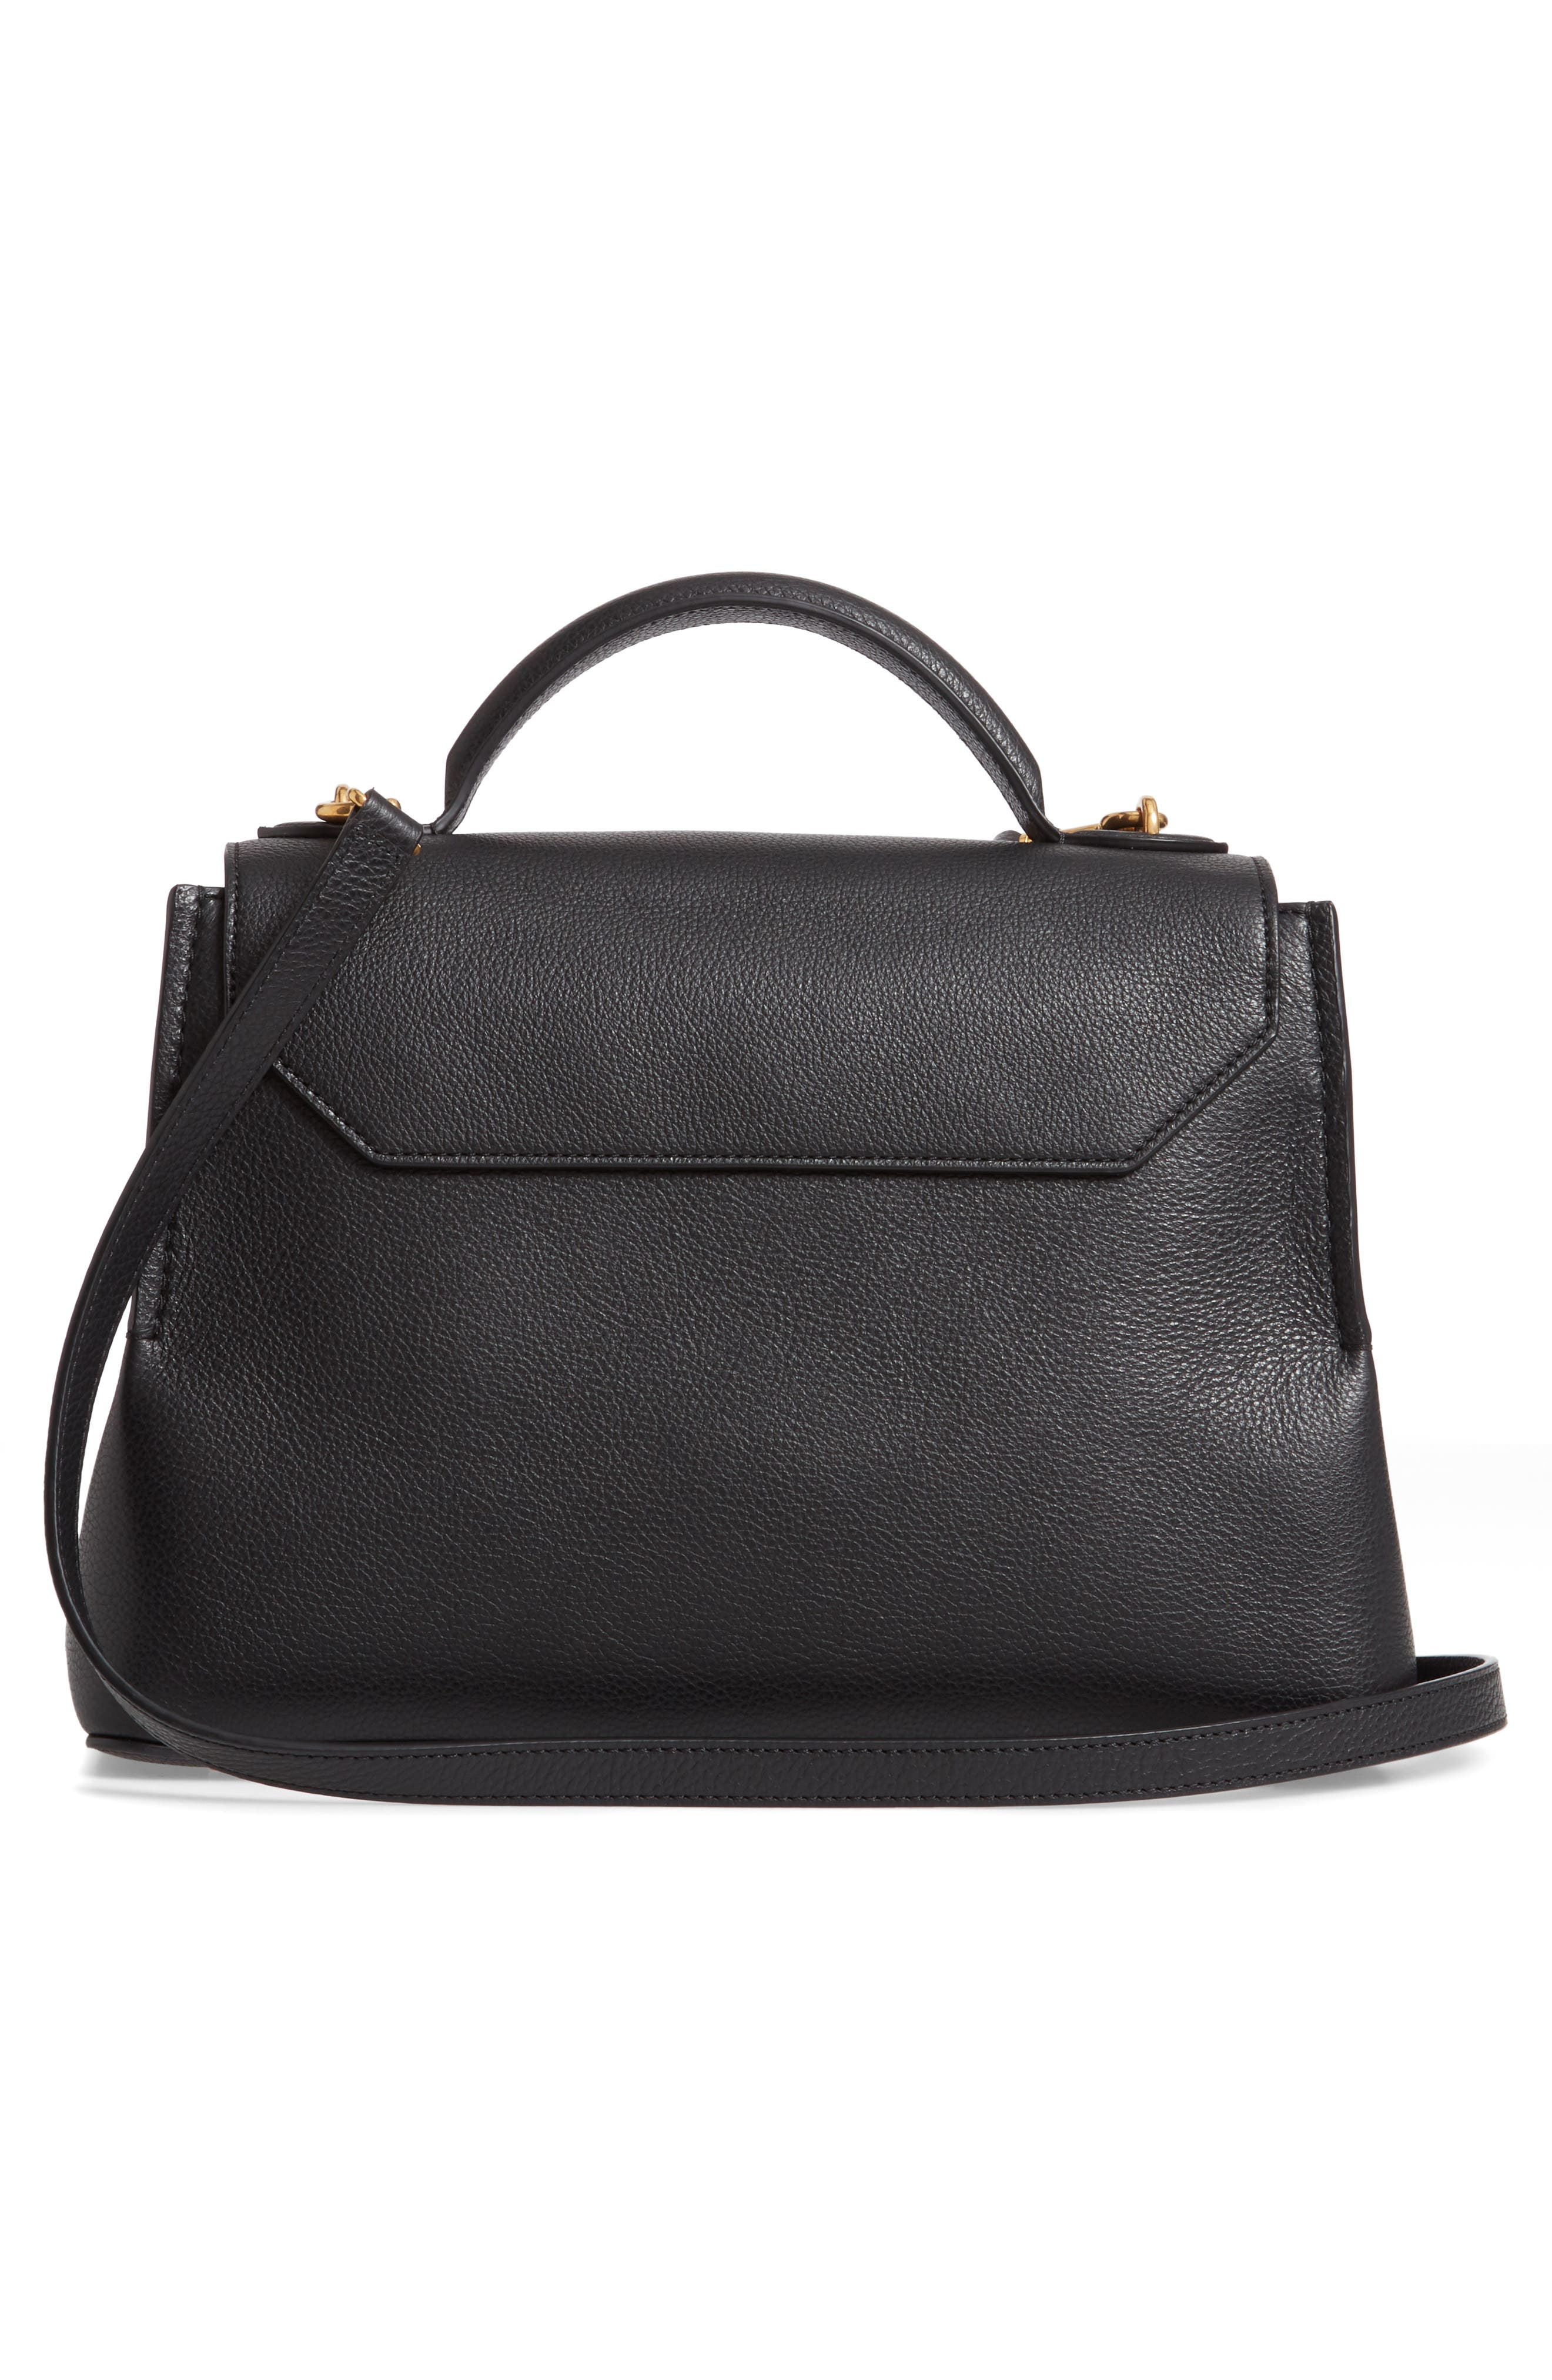 MULBERRY,                             Small Seaton Leather Top Handle Satchel,                             Alternate thumbnail 3, color,                             BLACK